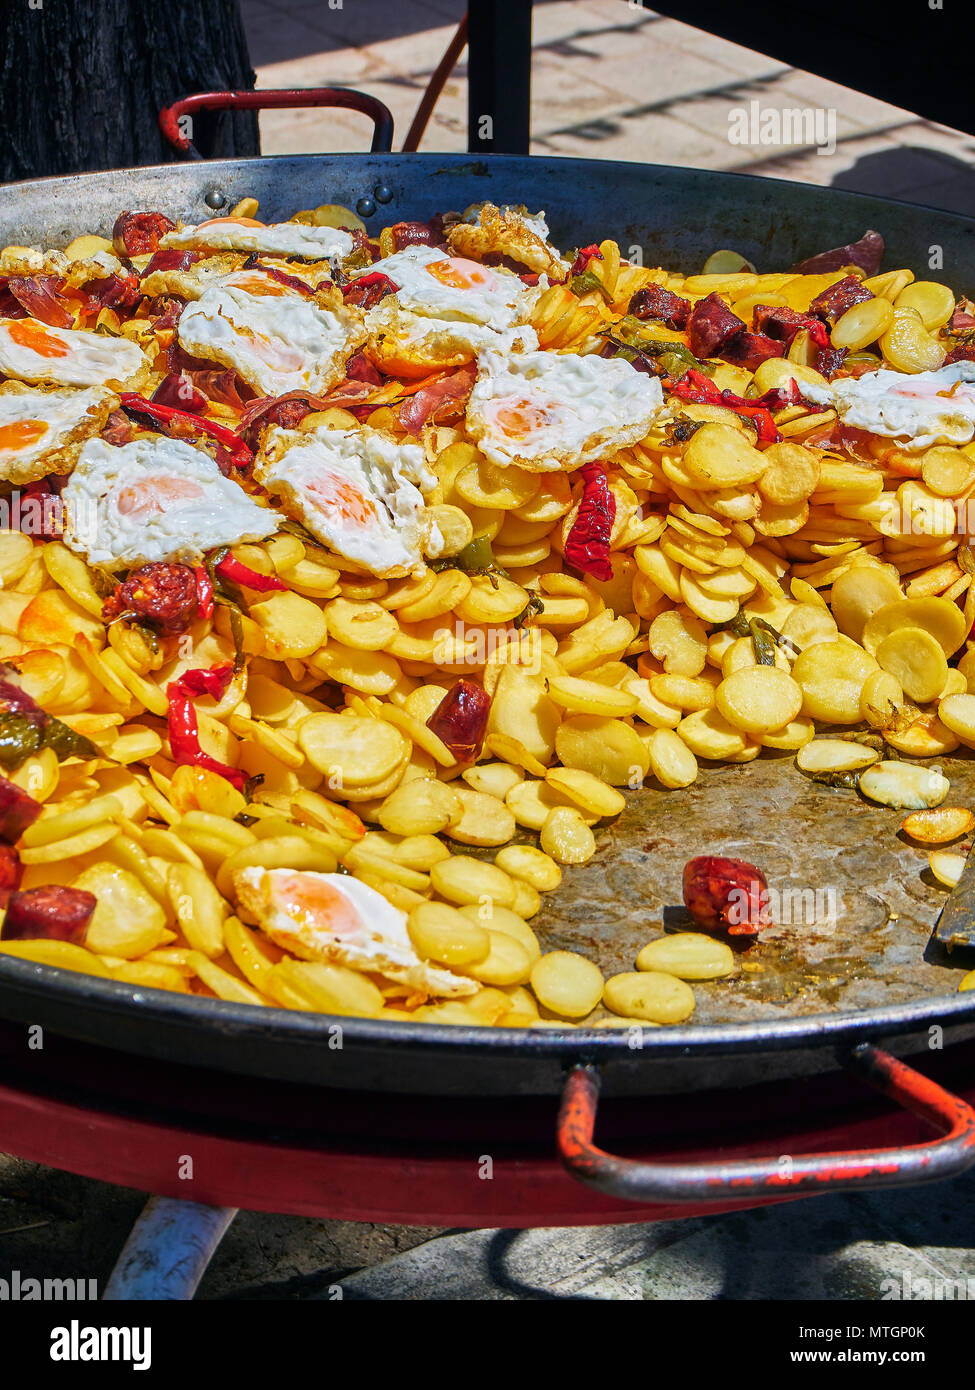 Spanish eggs. Fried eggs with chorizo, potatoes and peppers to the frying pan. Spanish street food. - Stock Image